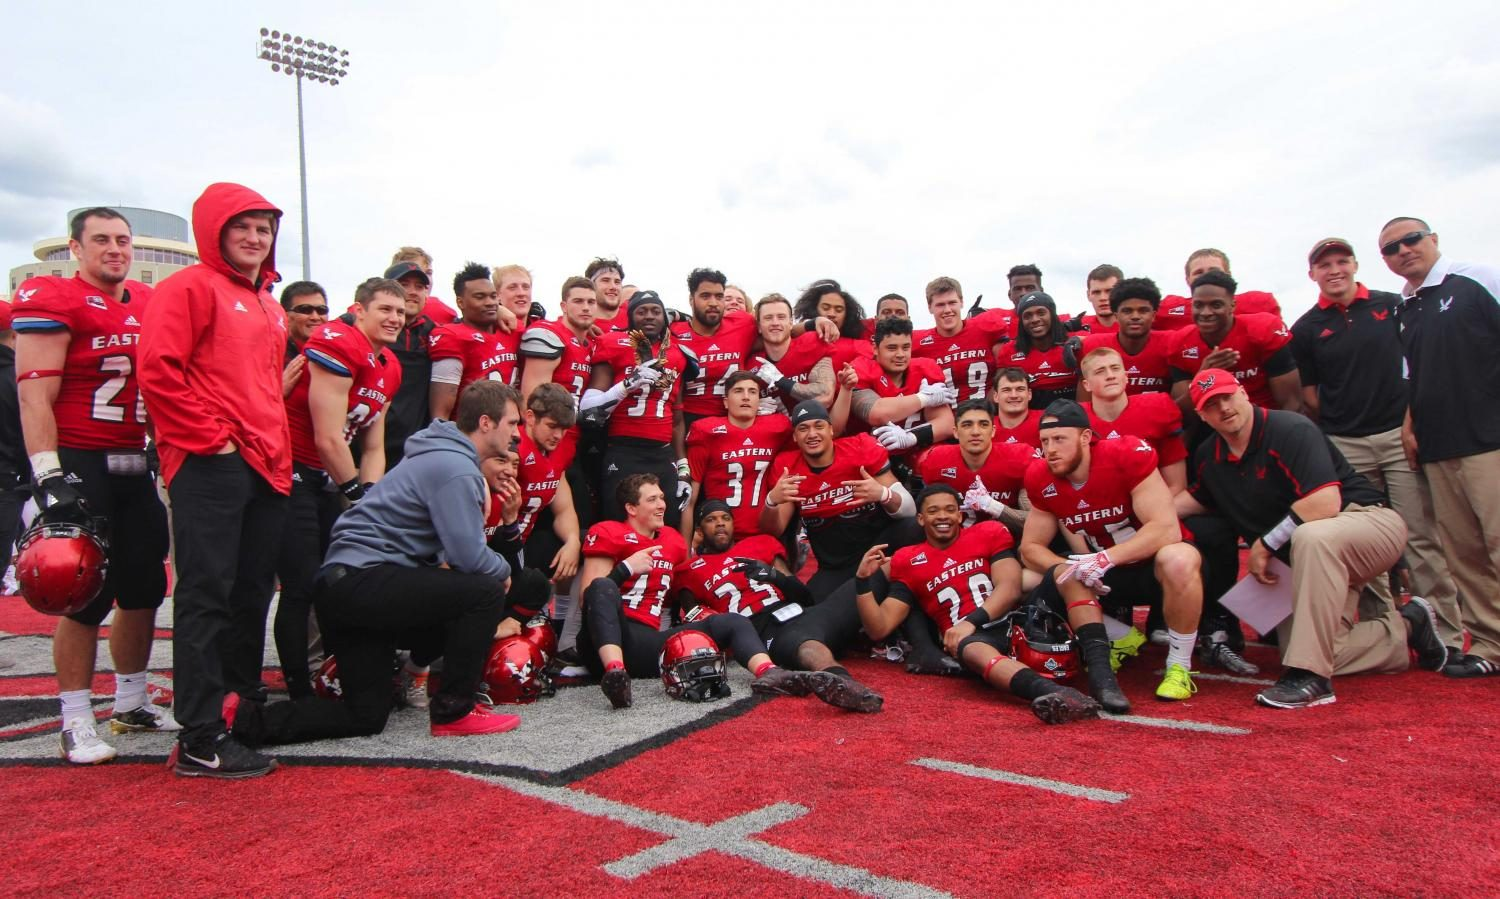 Players+on+Team+Red+pose+for+a+picture+after+their+win+in+the+annual+Red-White+Spring+Game